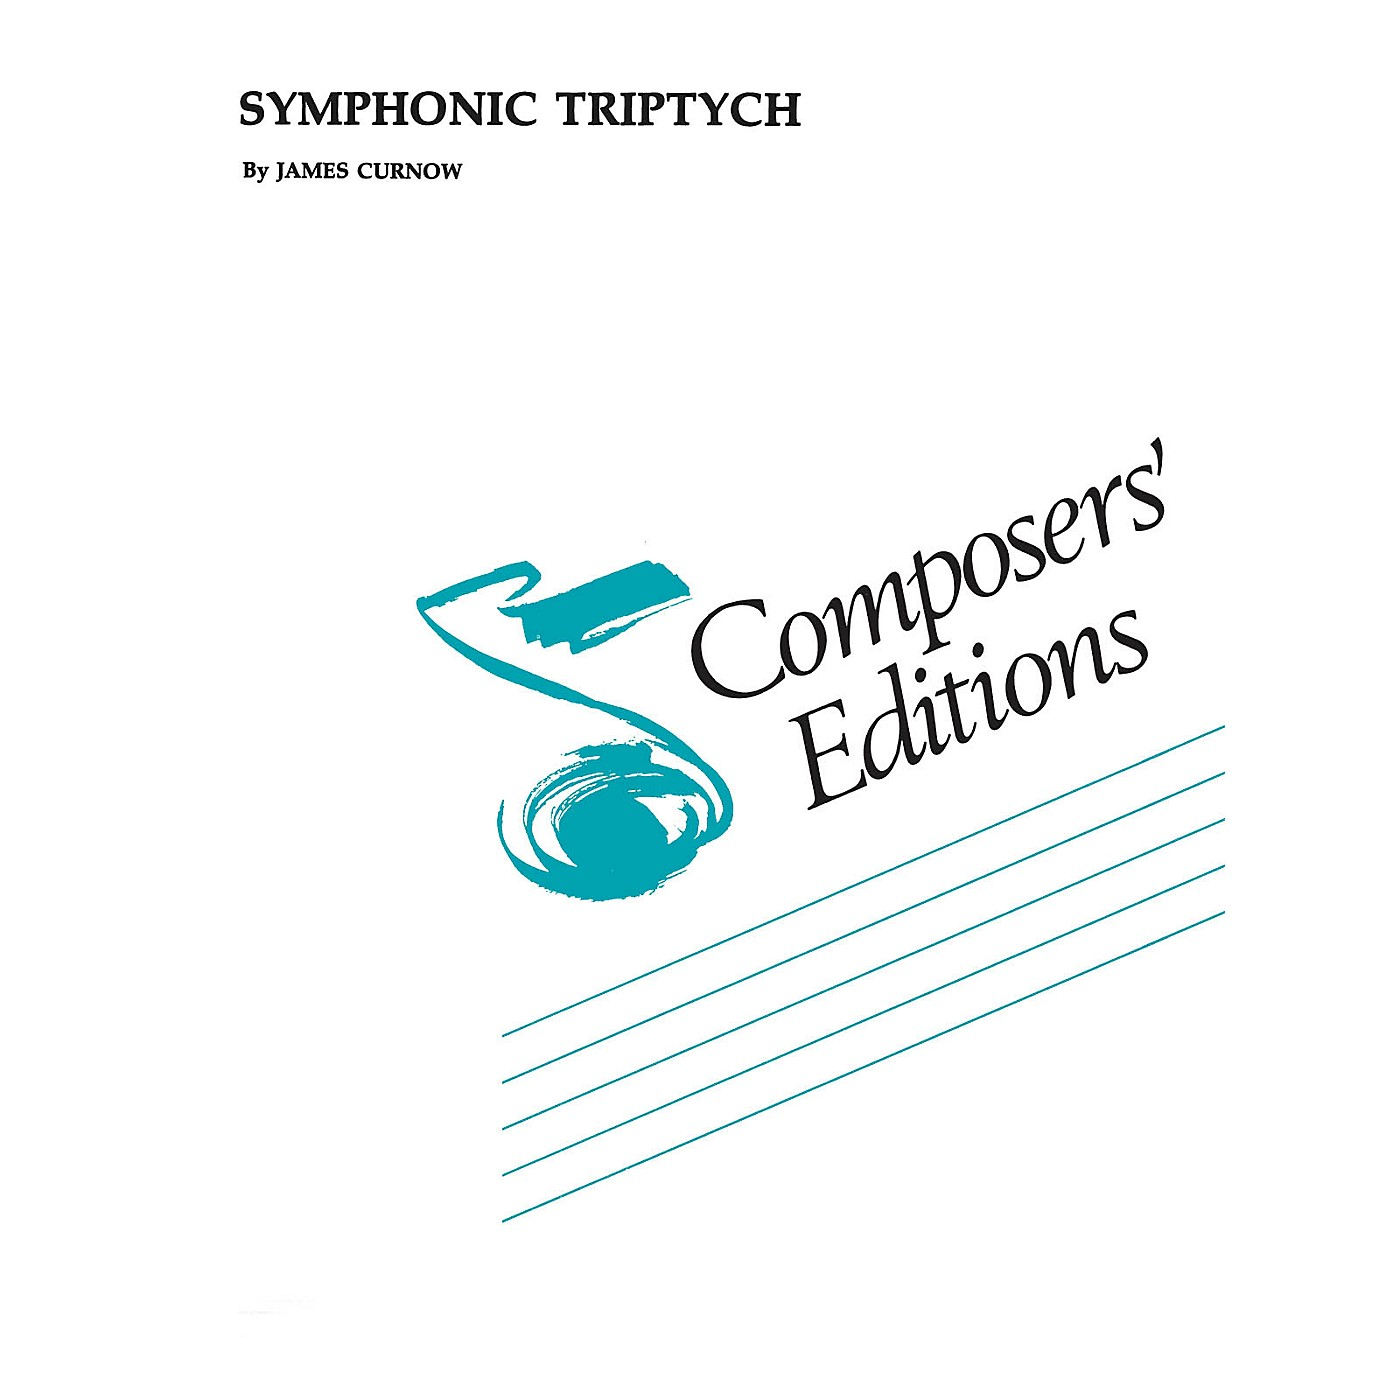 Hal Leonard Symphonic Triptych Concert Band Level 5 Composed by James Curnow thumbnail